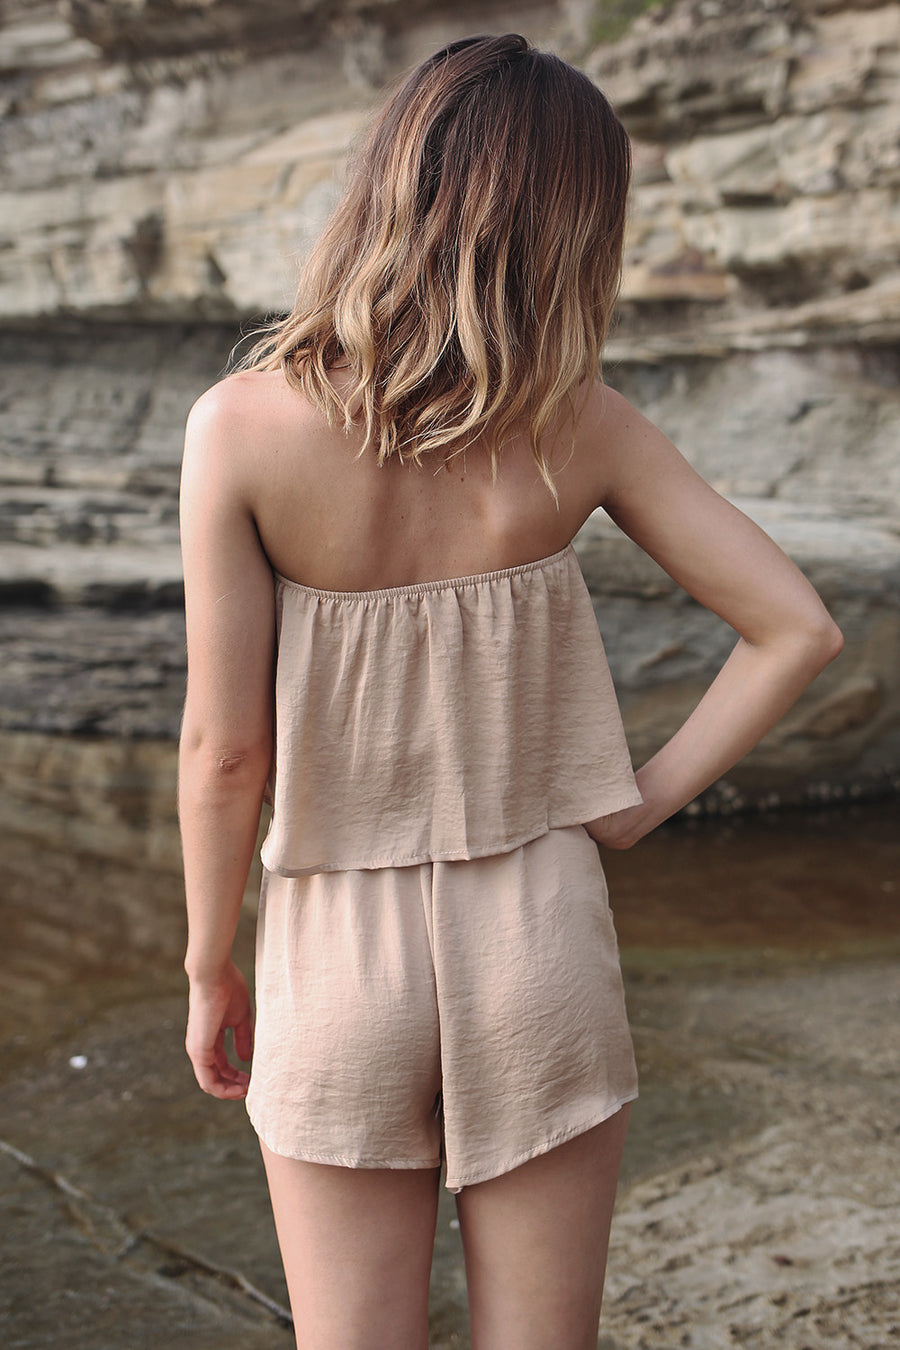 Flirt With Fire Playsuit in Gold - HER Empire Fashion Boutique Terrigal & Online